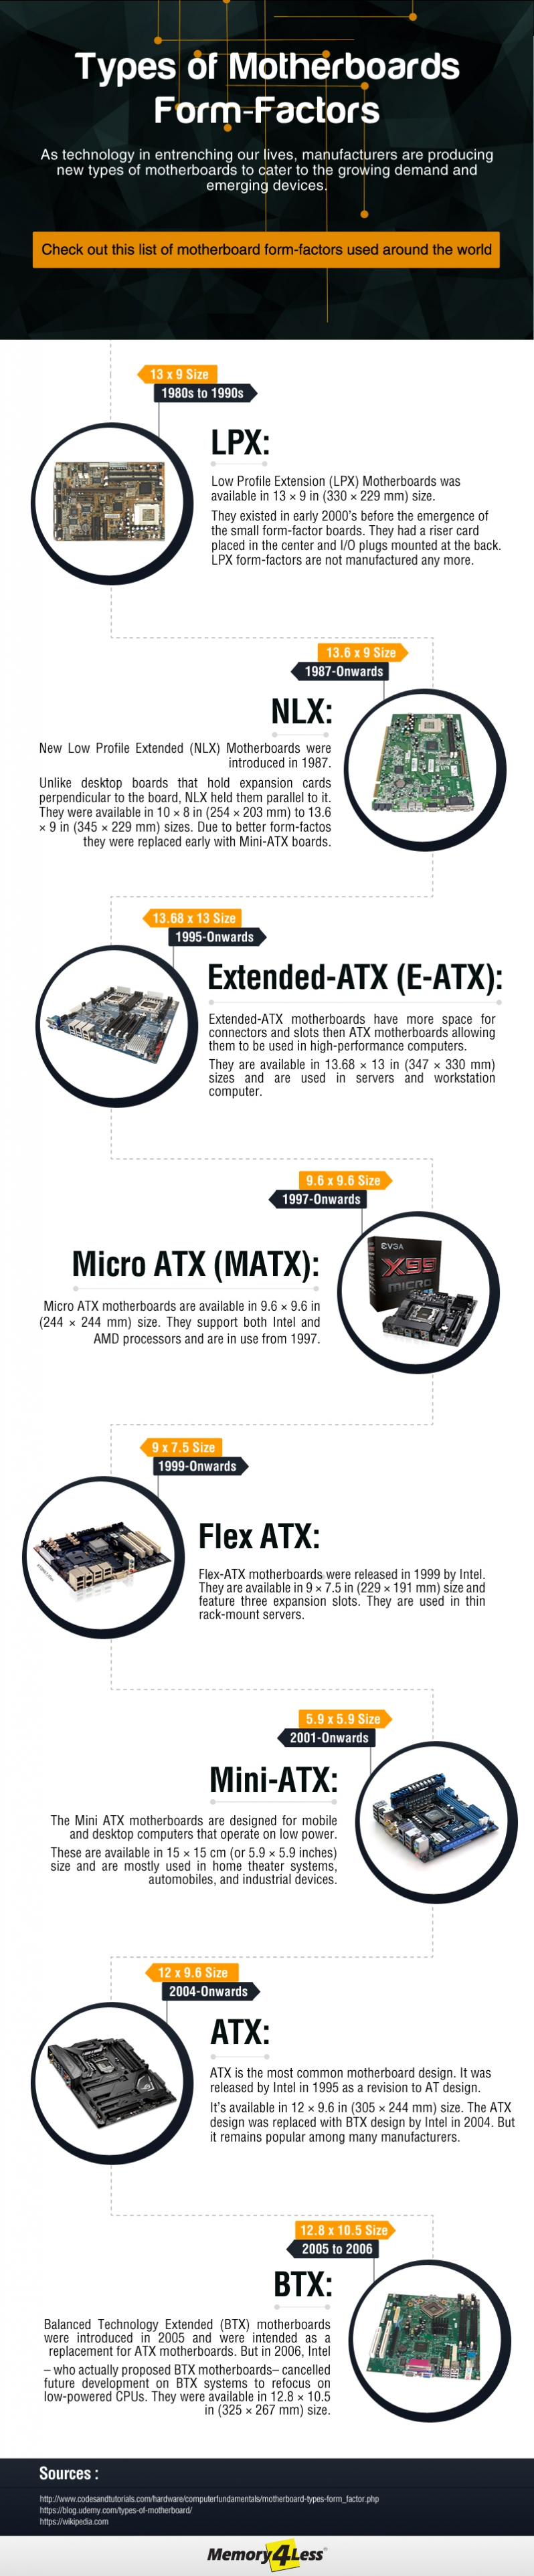 Types of MotherBoard Form-Factors Explained